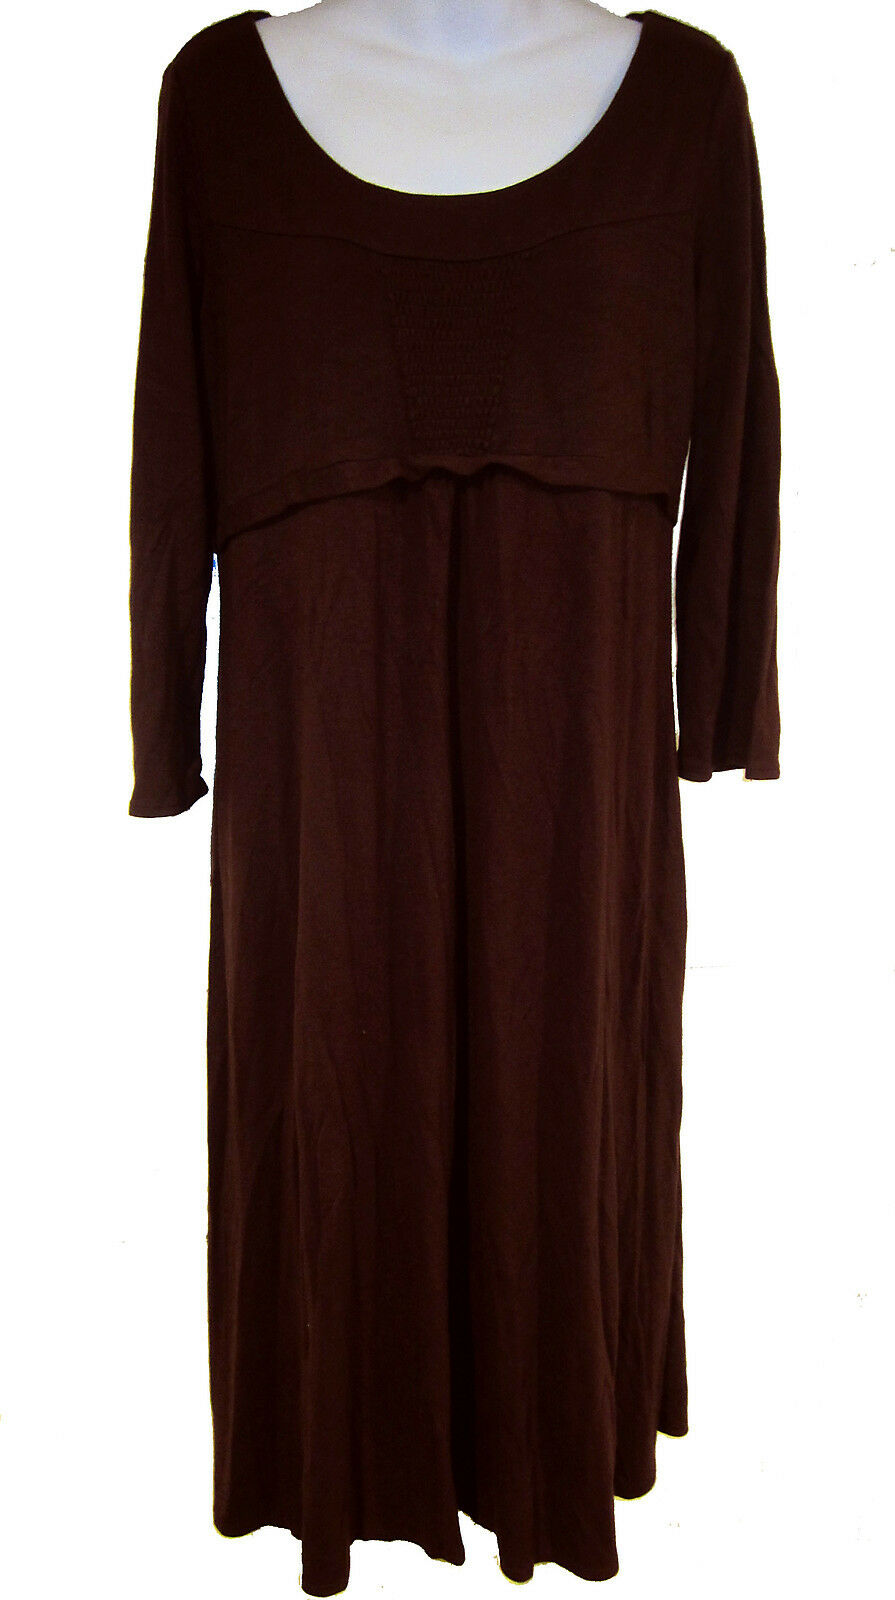 Ann taylor loft maternity dress sz 12 wine jersey knit ebay picture 1 of 4 ombrellifo Image collections